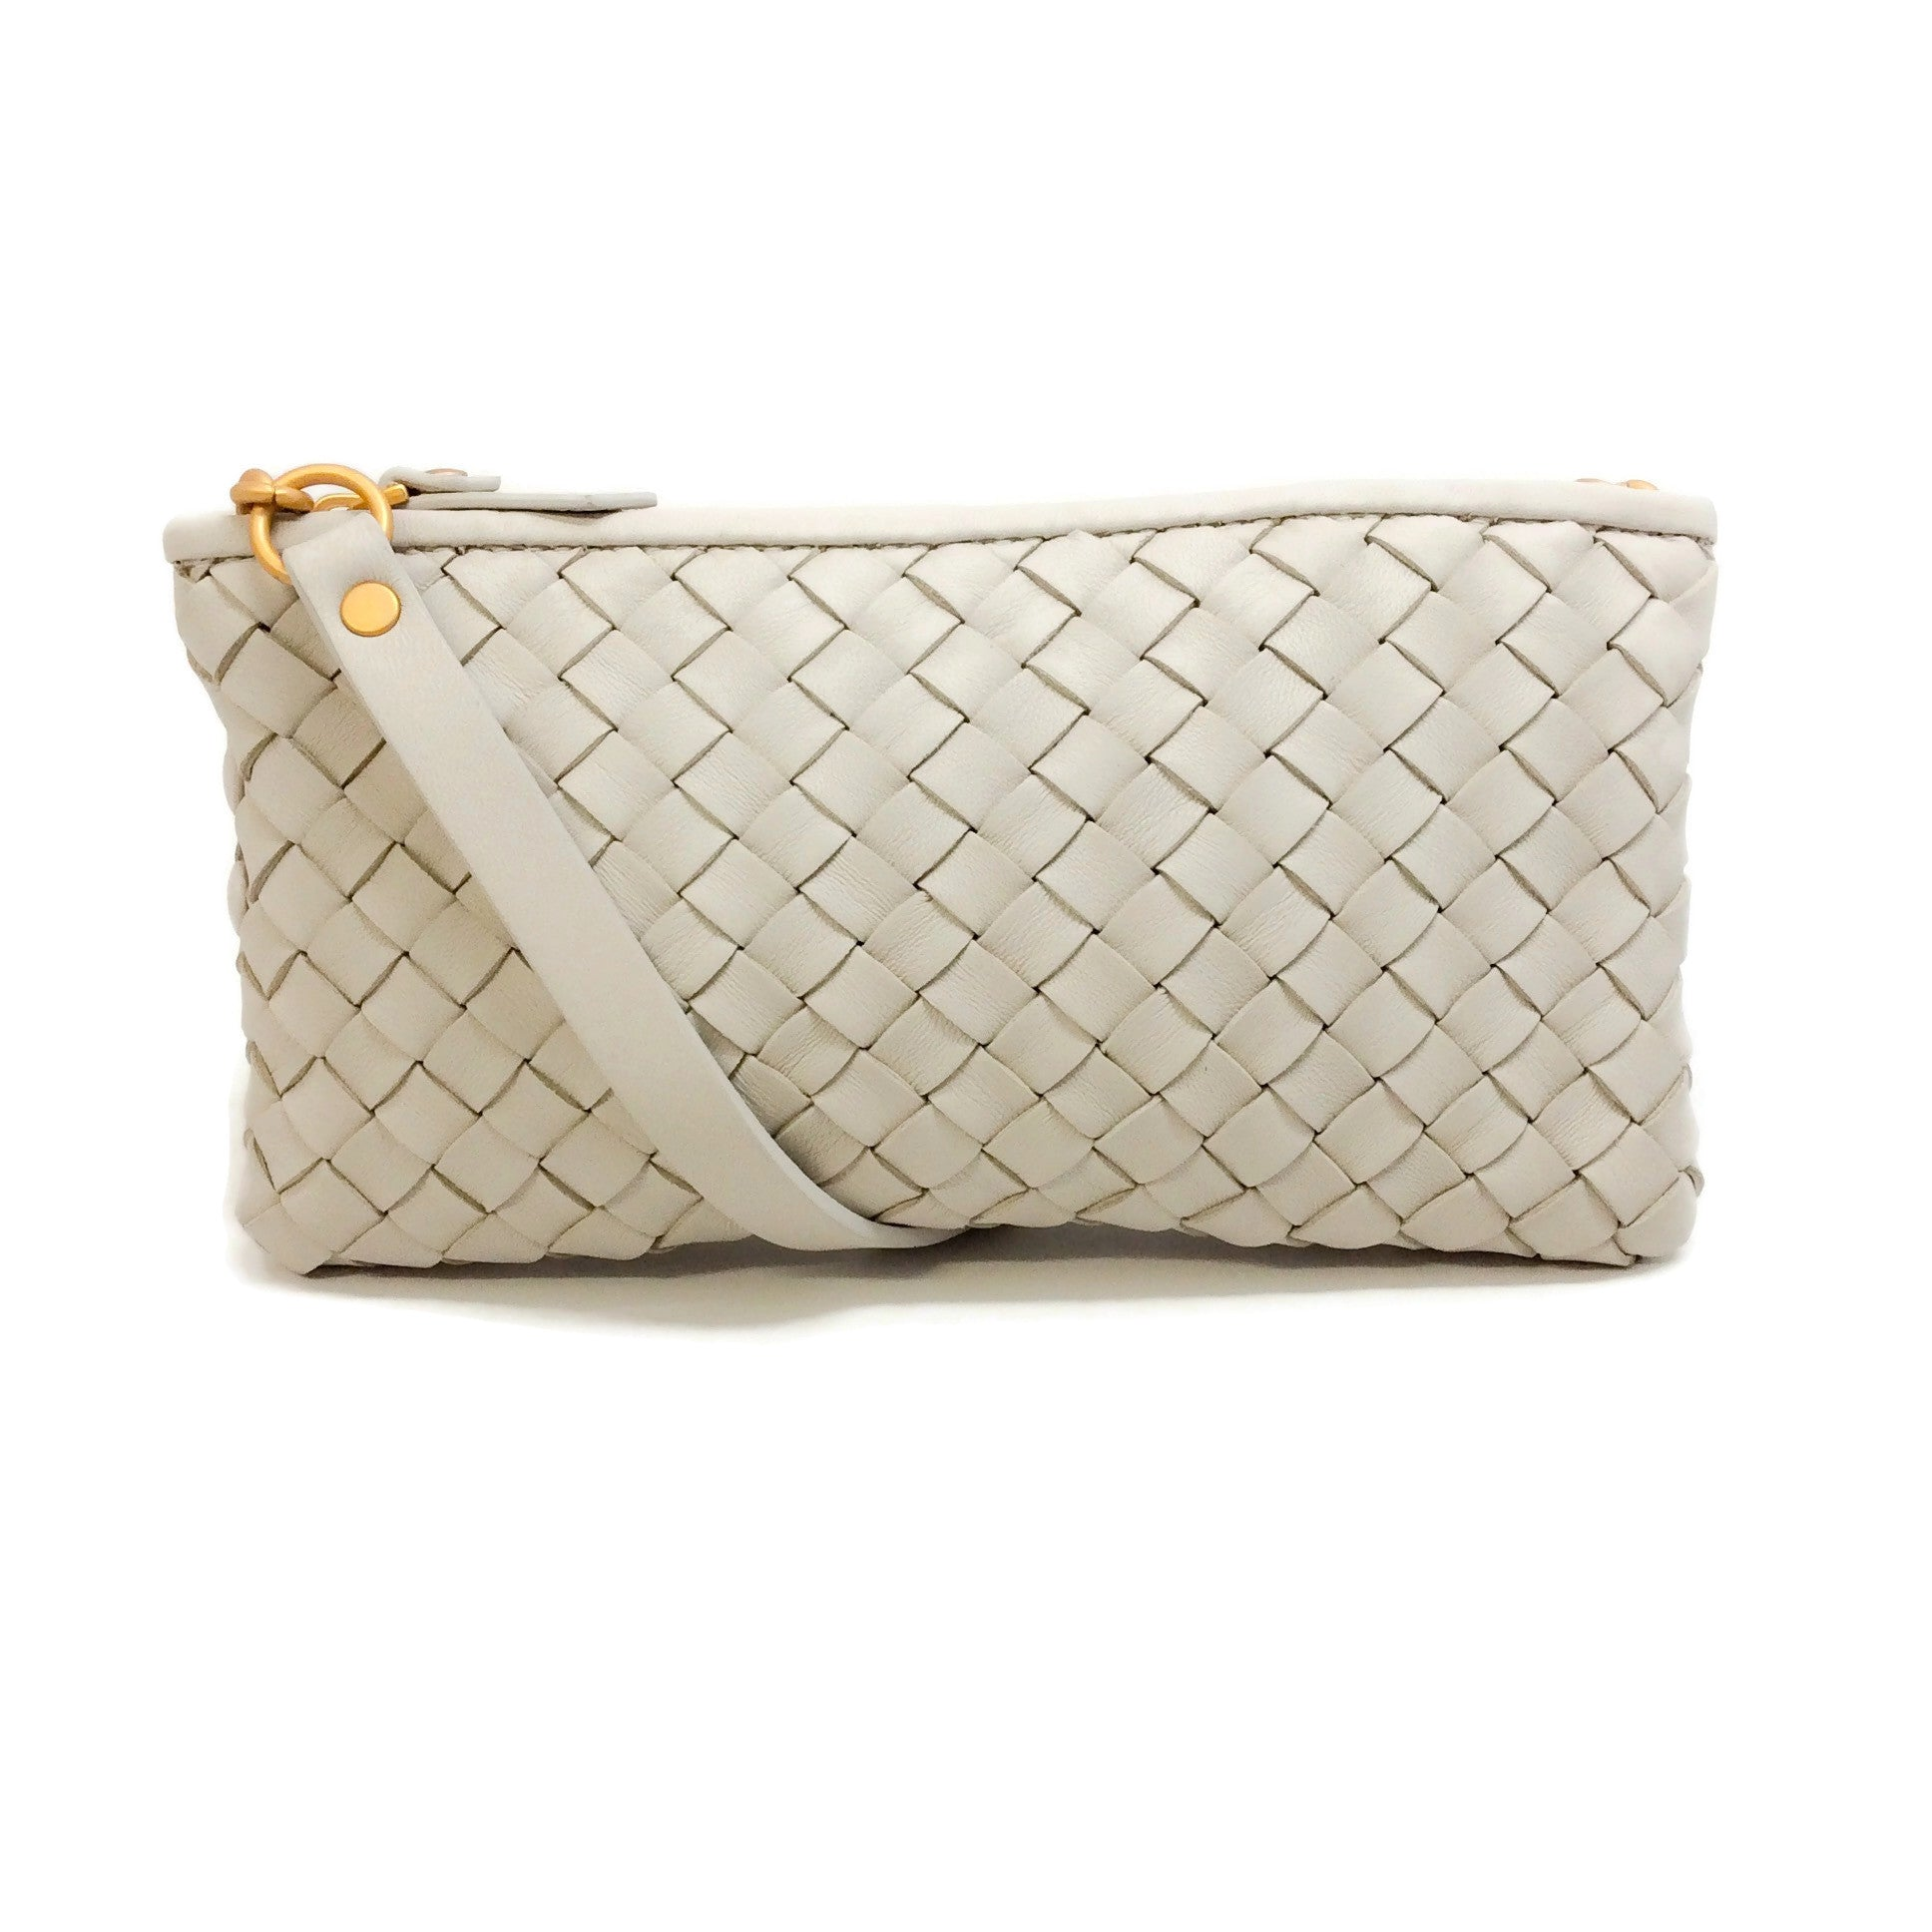 Bottega Veneta Ivory Intrecciato Leather Shoulder Bag